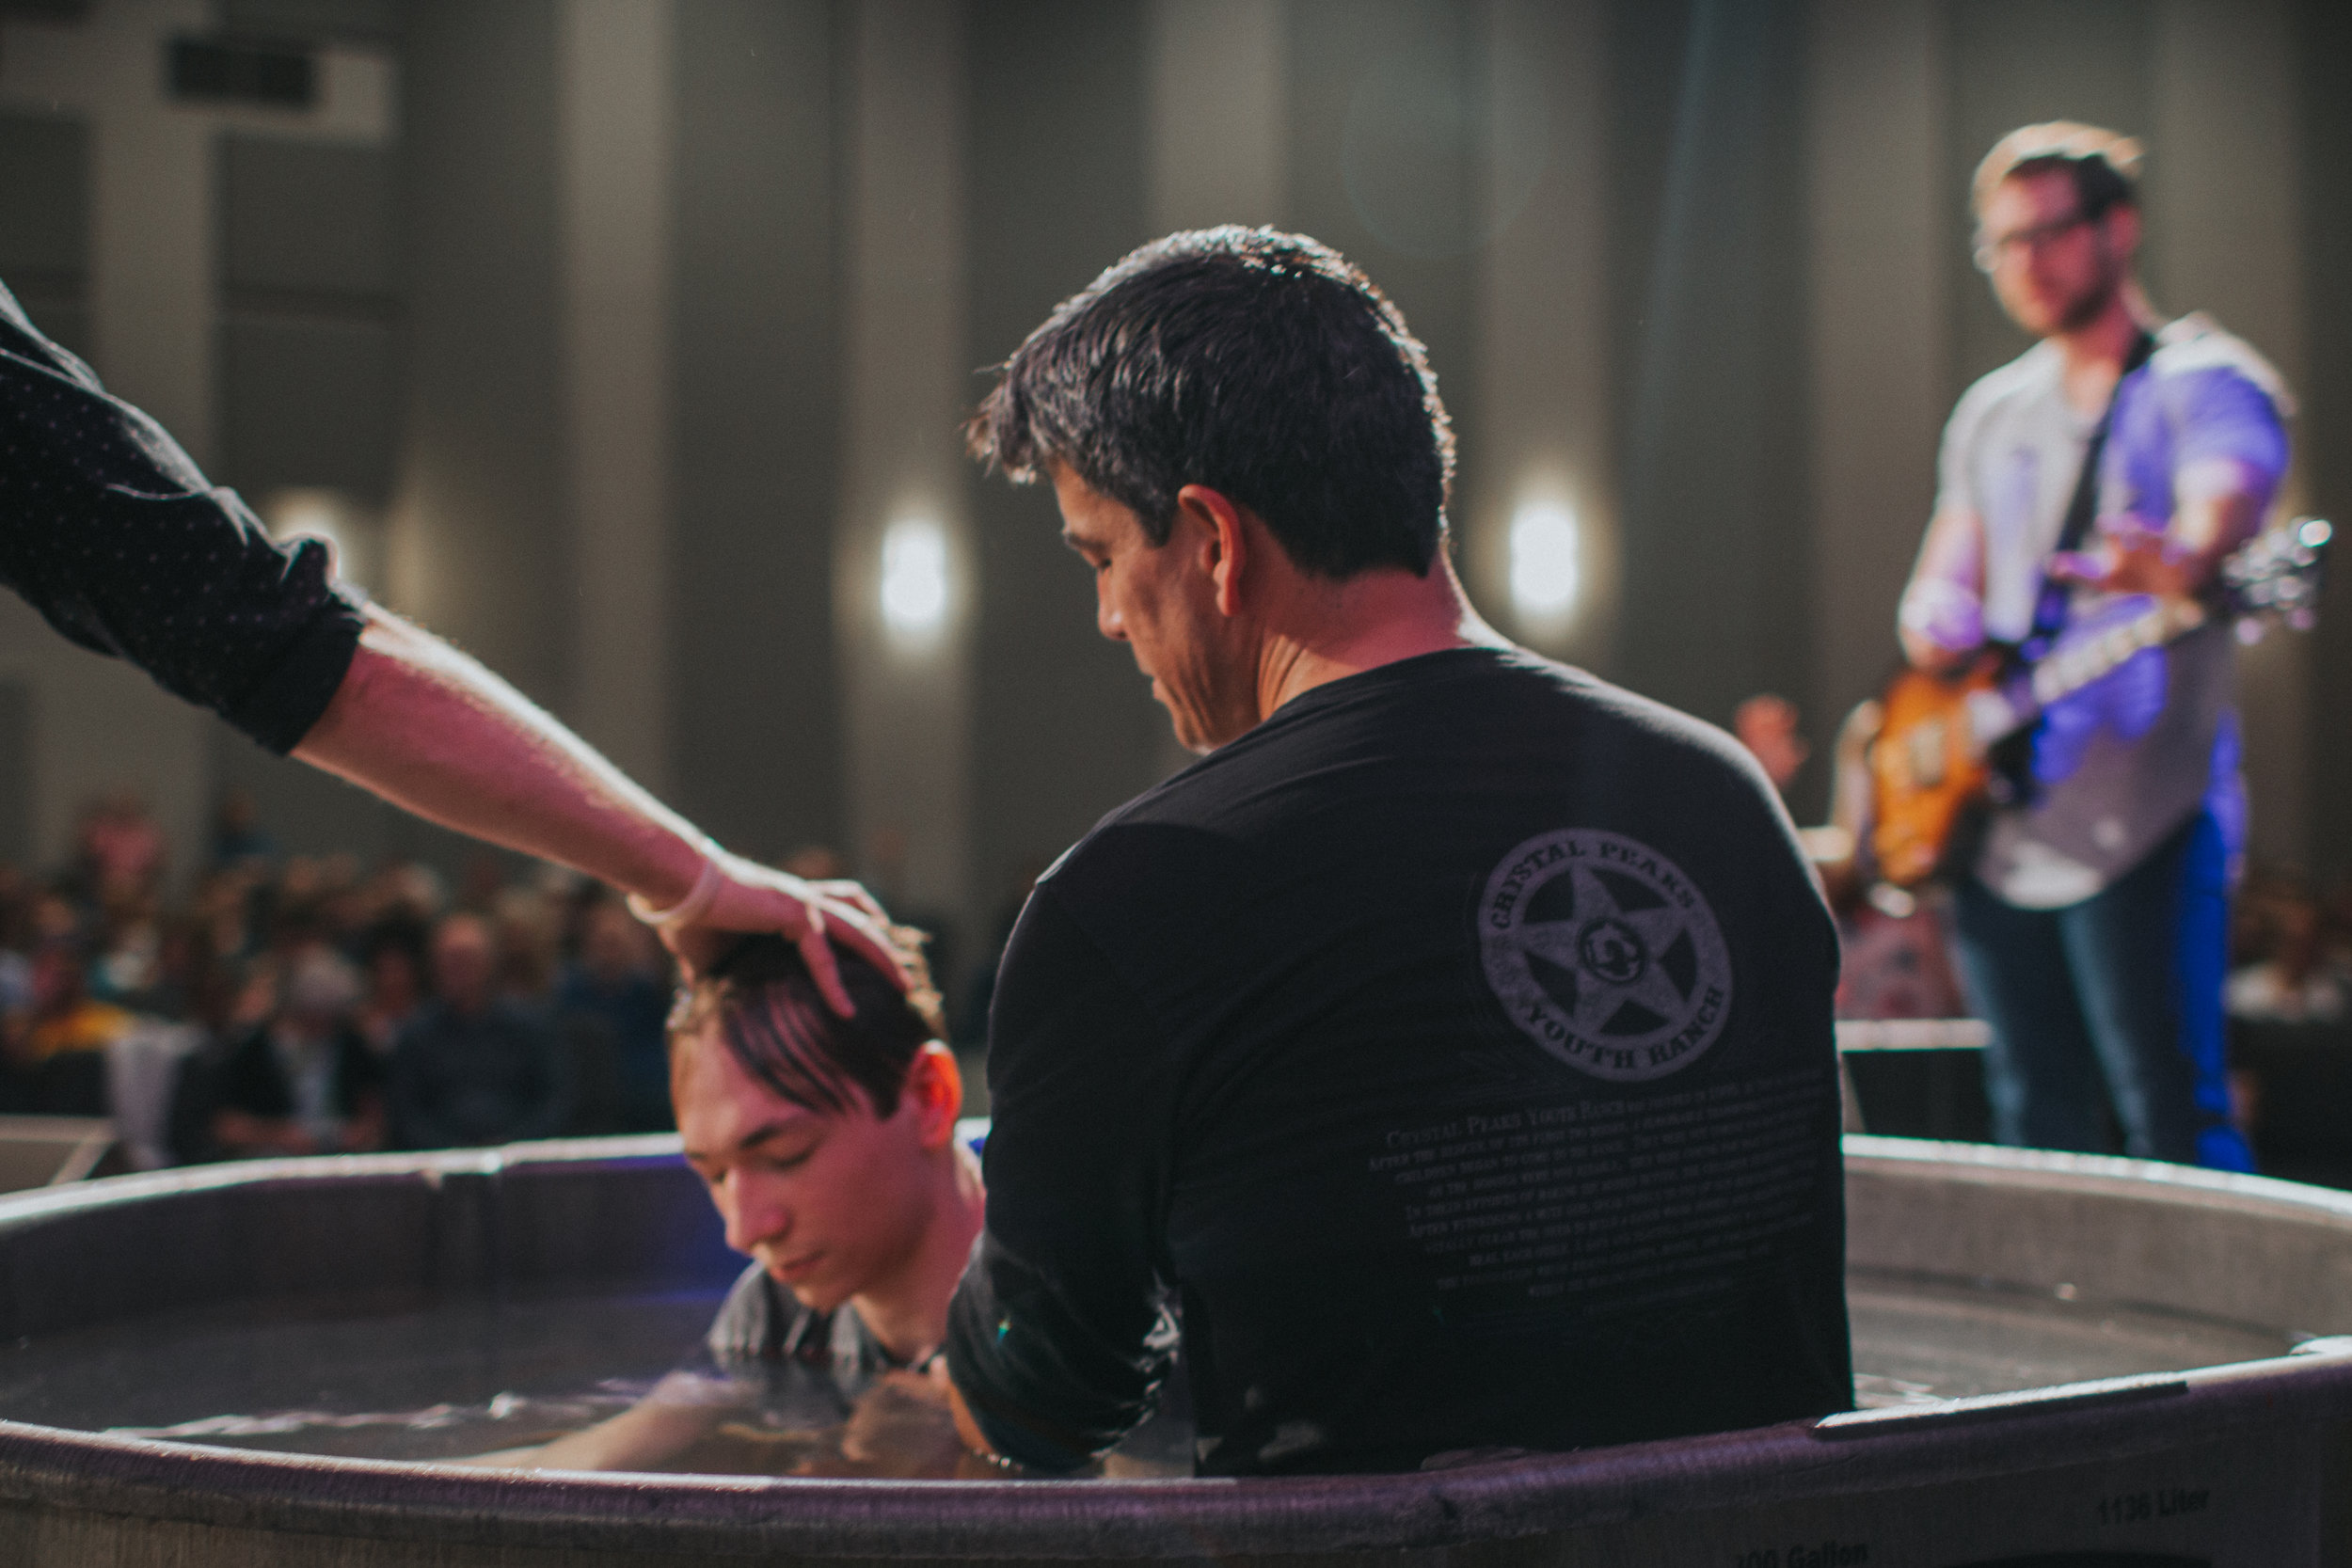 There is a great need for men of God to be both leaders and mentors in all that they do. - It's important that we have His heart for our families, our church, and the world. Men's meetings and activities are designed to bring encouragement, maturity, and spiritual growth to their lives.